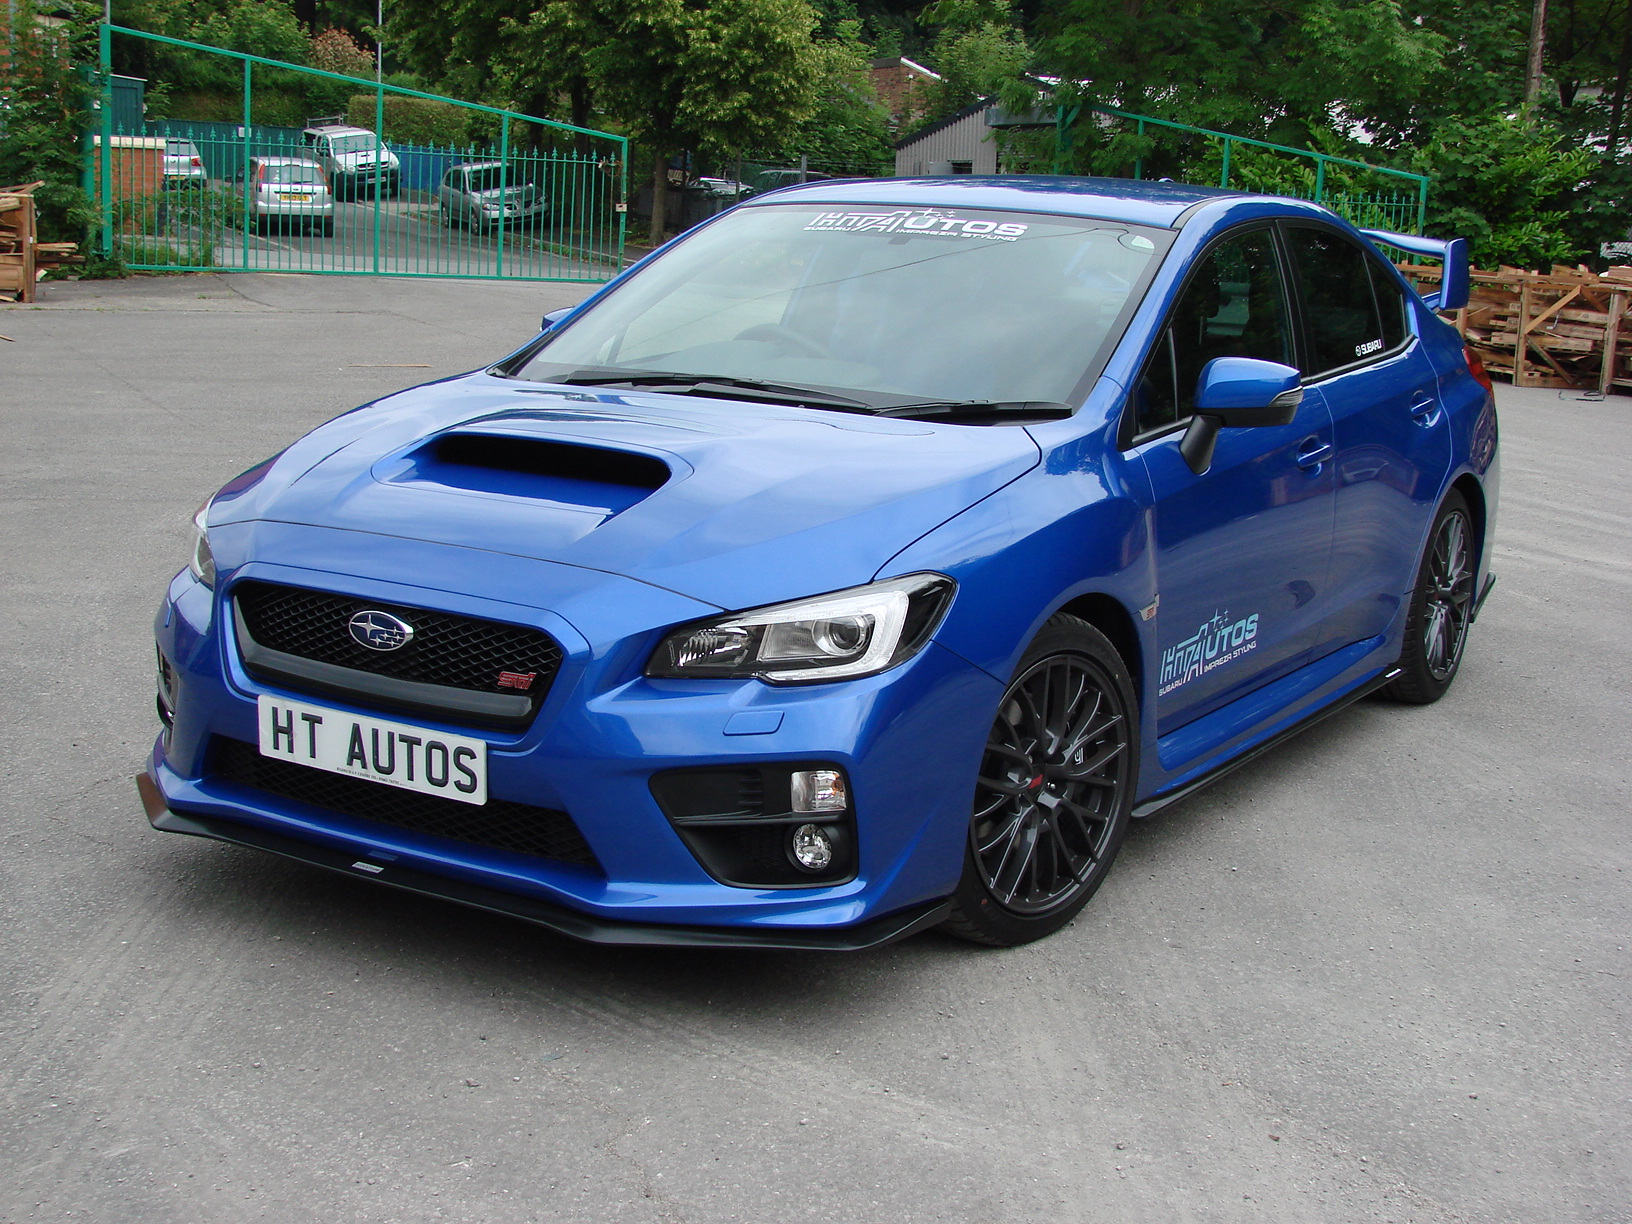 Subaru 2015 Wrx Sti Bottomline Body Kit Lip Kit